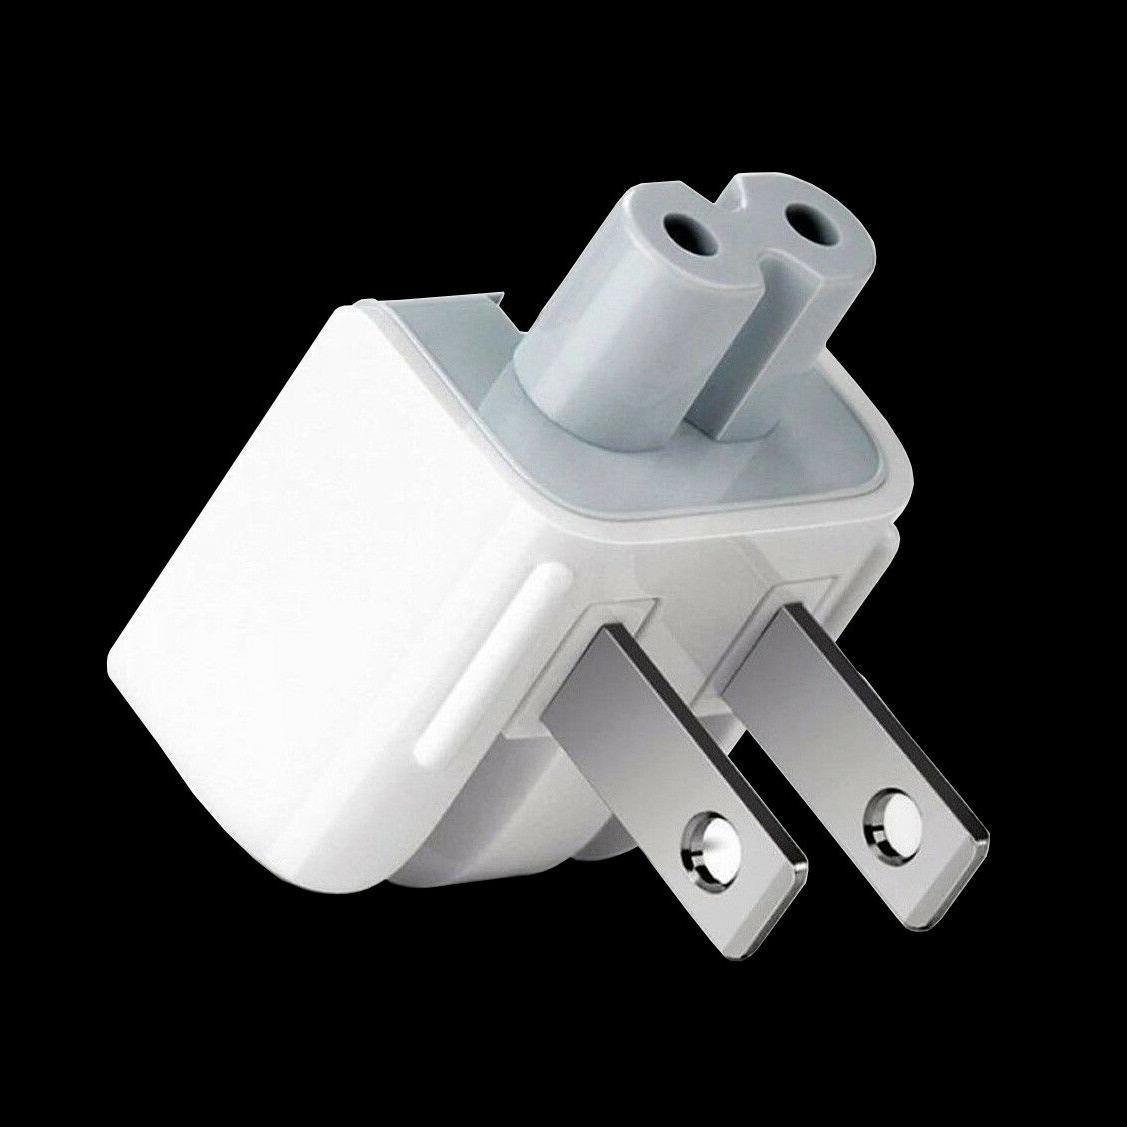 2 x Mag Safe AC Wall Adapter DUCKHEAD 2 PRONG 45W 85W Apple